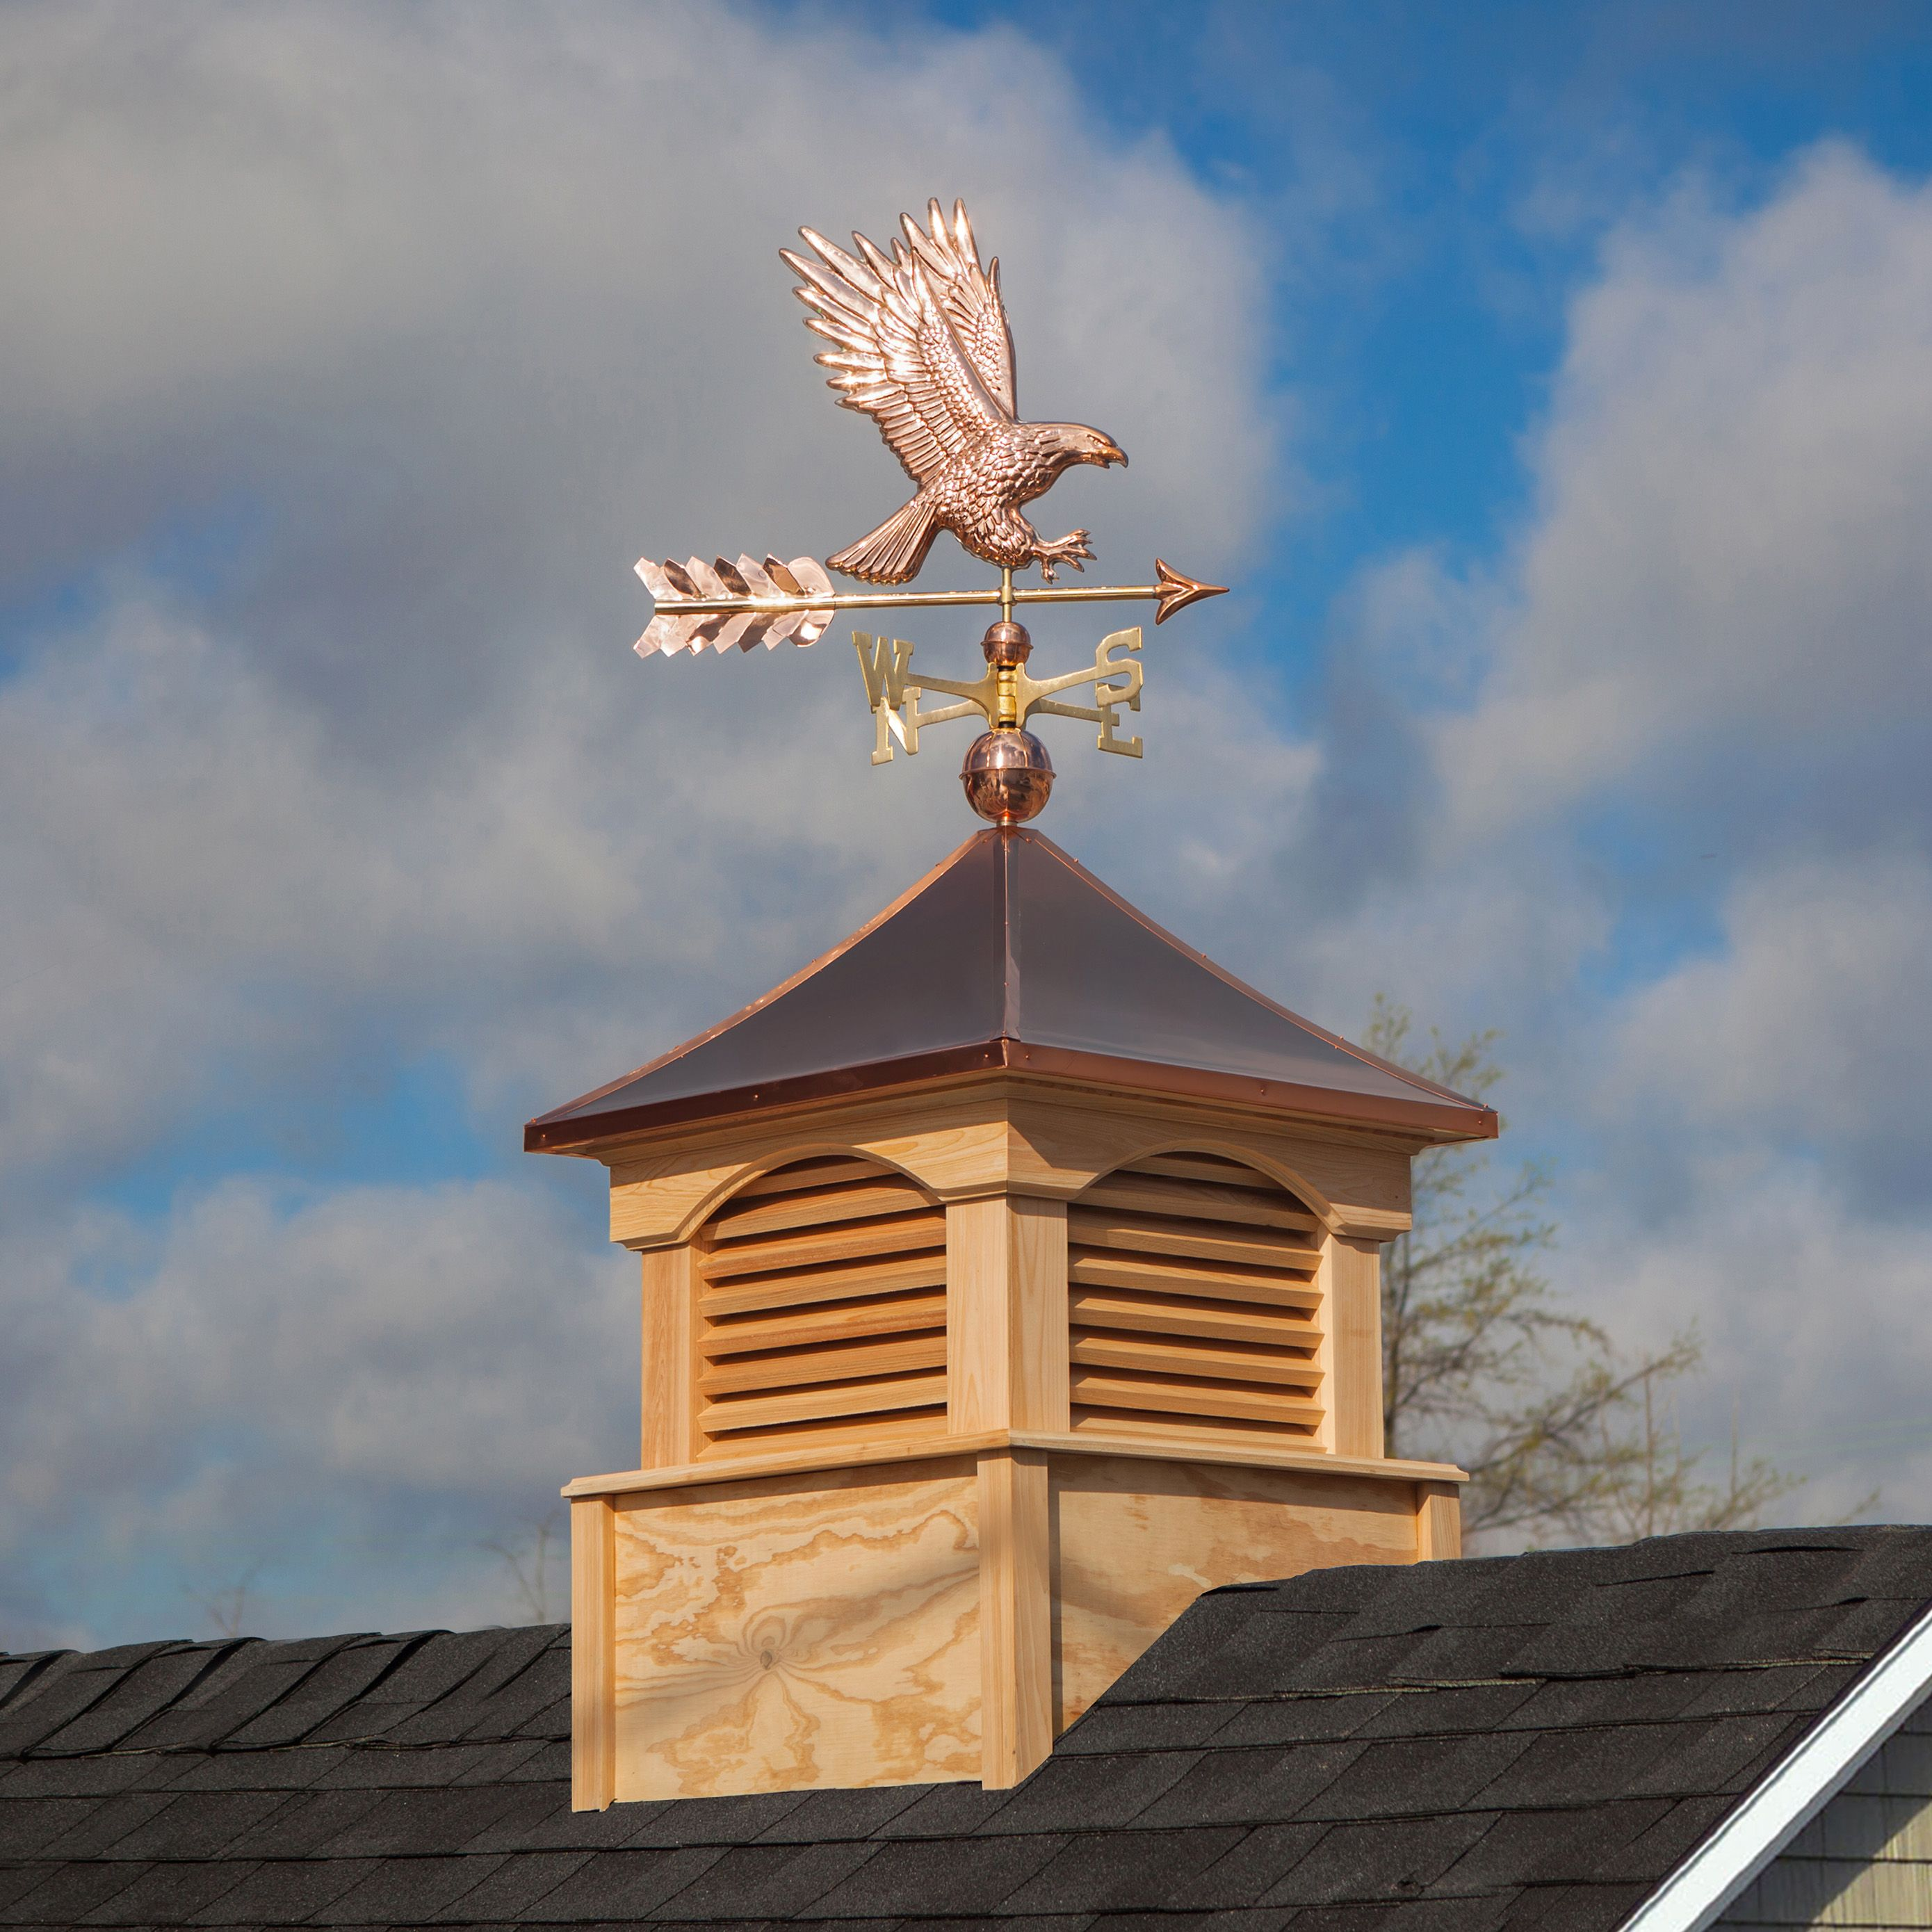 Buy Online Copper Weathervanes Roof Decorations Lawn Accents In 2020 Copper Roof Cupolas Bald Eagle